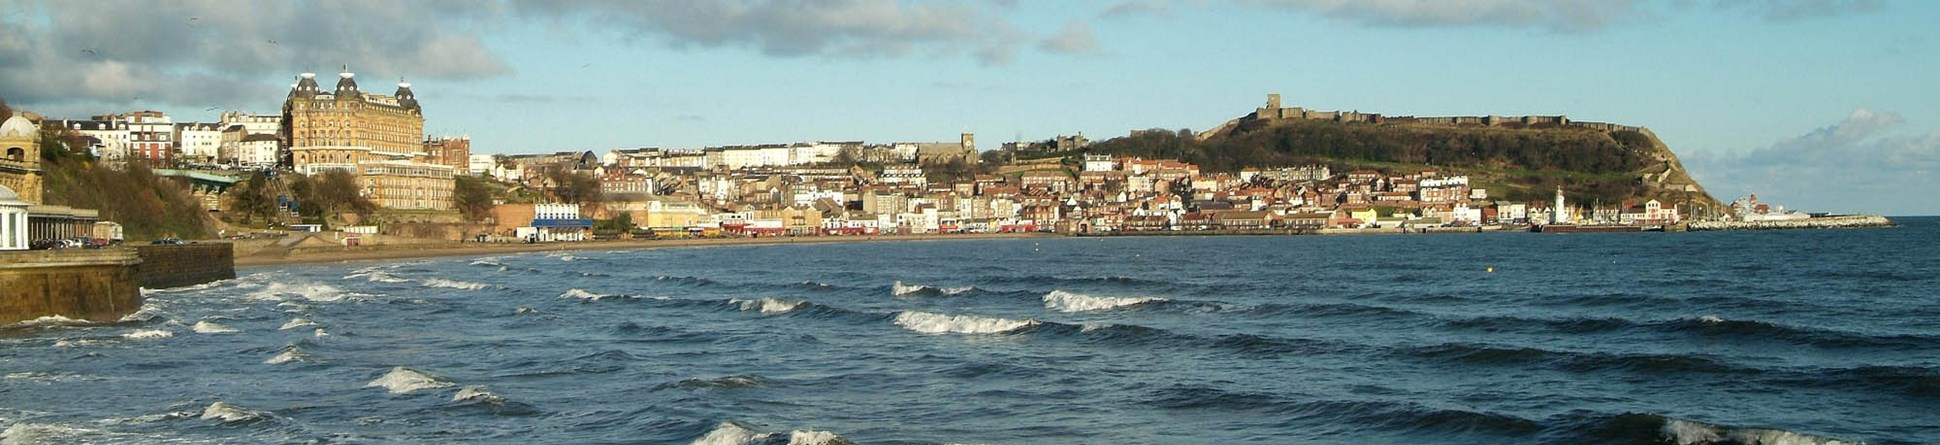 View across the water to the beach and the Grand Hotel, Scarborough, North Yorkshire